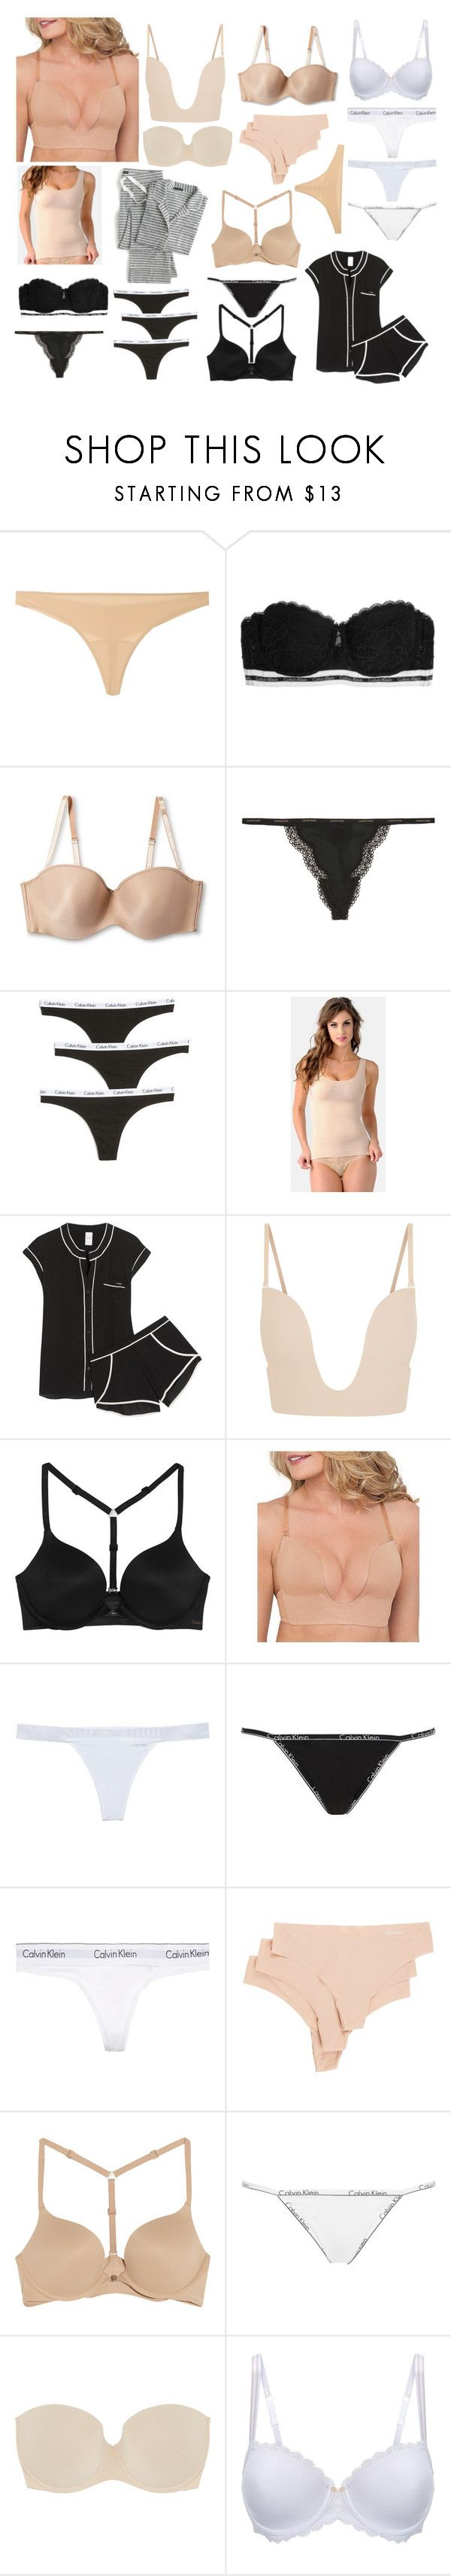 """Sleeping Cannes"" by claudia-regina-vieira-correa ❤ liked on Polyvore featuring La Perla, Calvin Klein Underwear, Maidenform, Belly Bandit, Fashion Forms, Chantelle, J.Crew and plus size clothing"